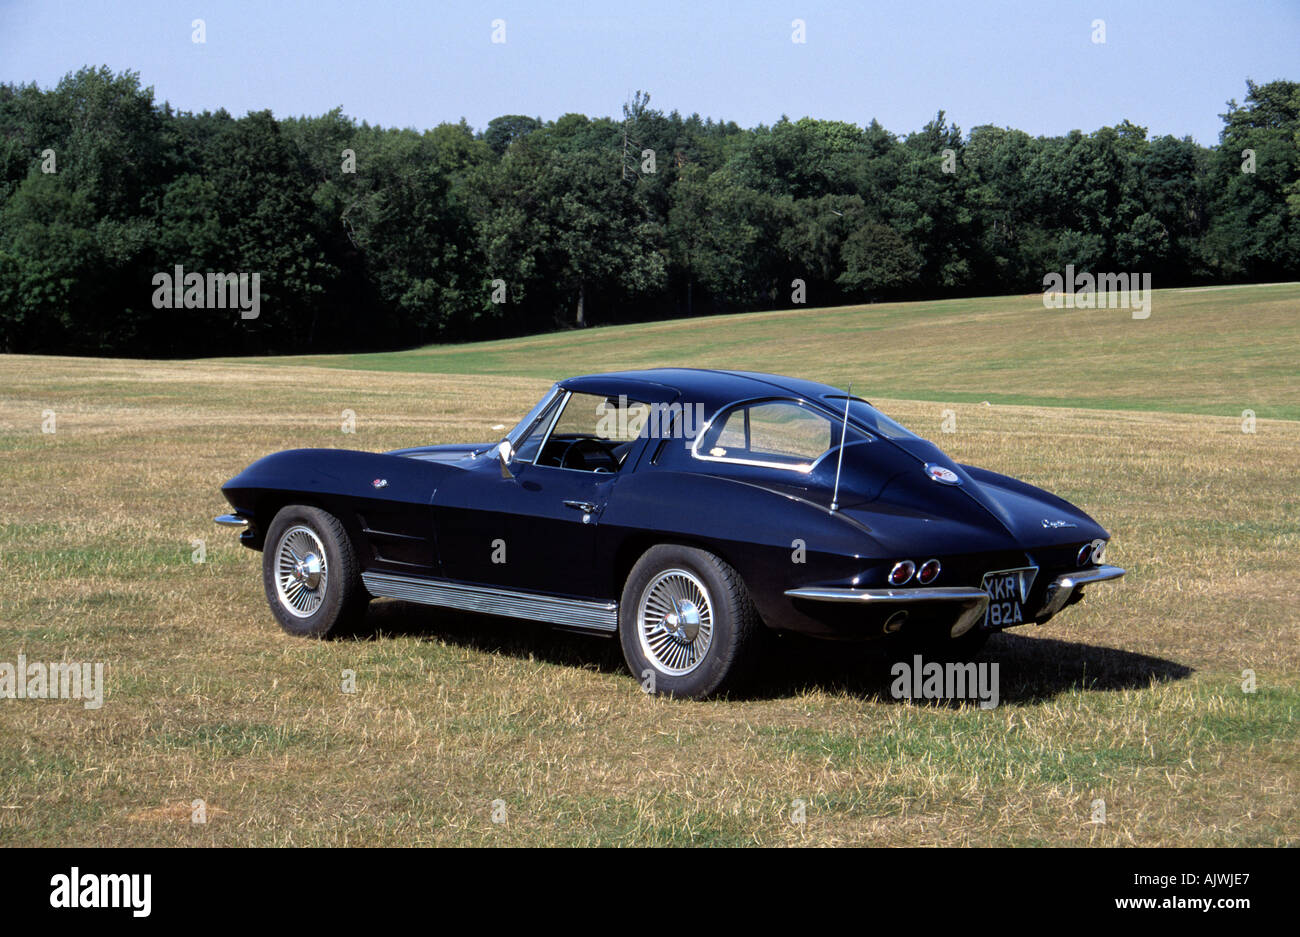 Corvette Stingray 1963 Stock Photos & Corvette Stingray 1963